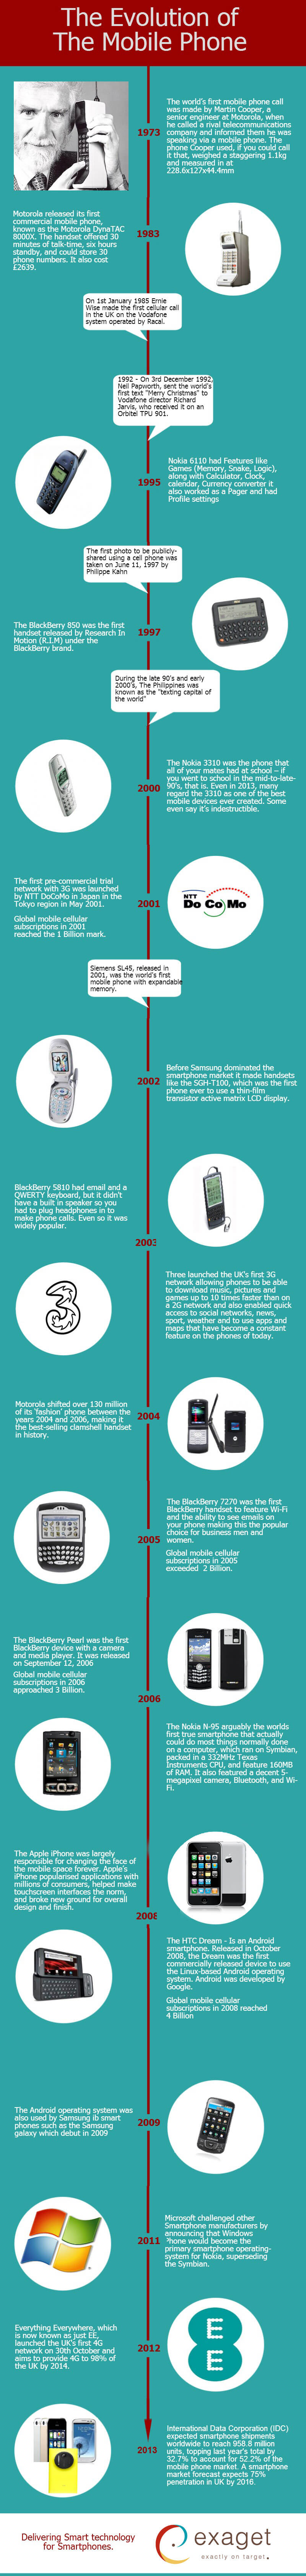 evolution-of-mobile-phones-infographic